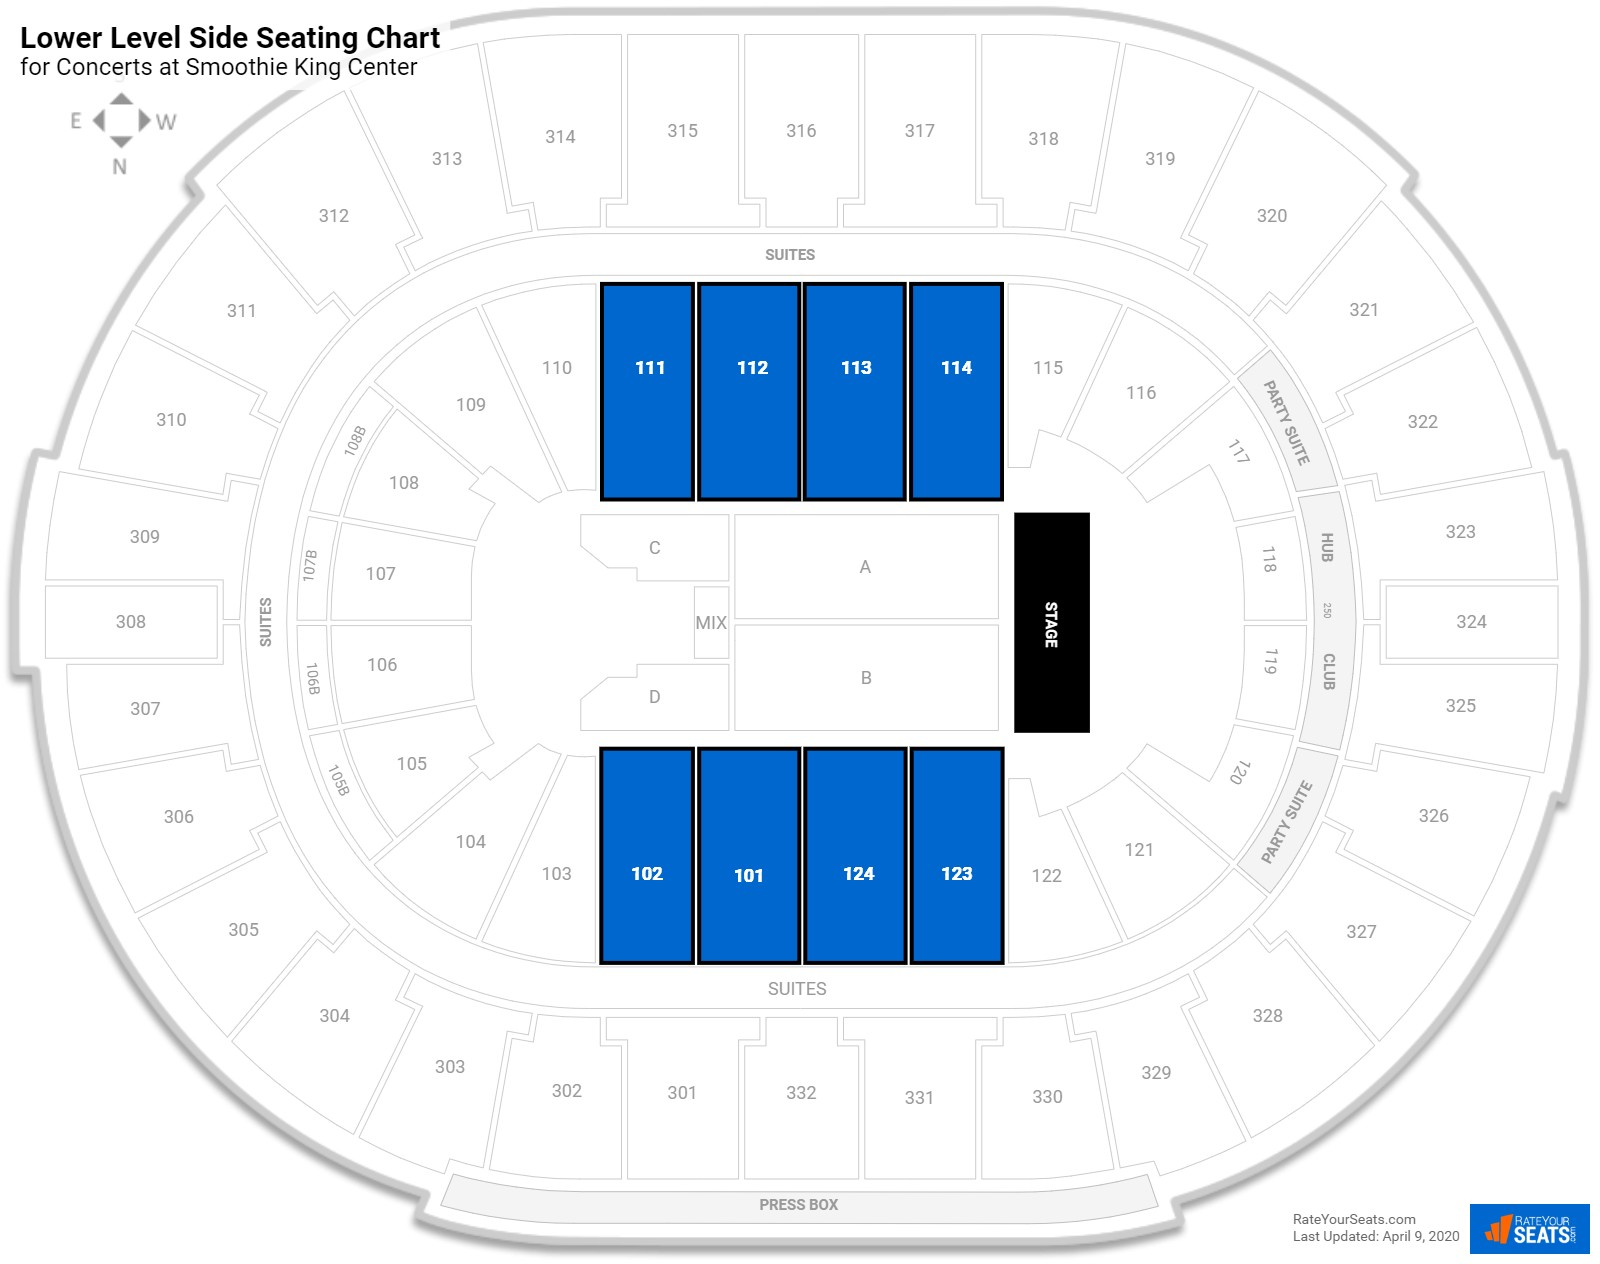 Smoothie King Center Lower Level Side Seating Chart